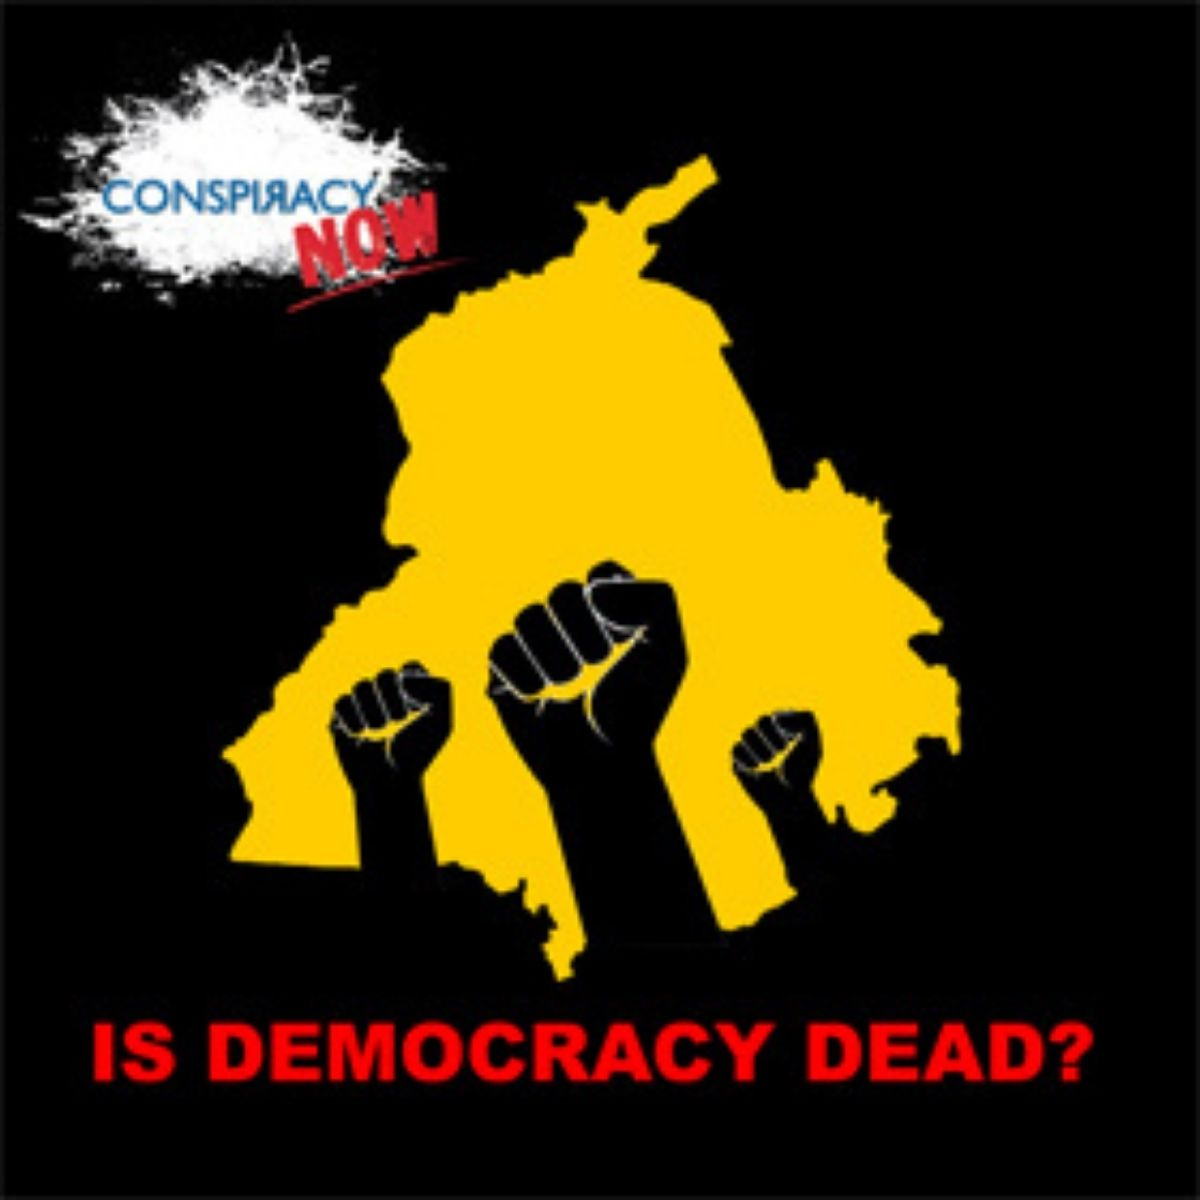 Conspiracy Now: Is Democracy Dead?